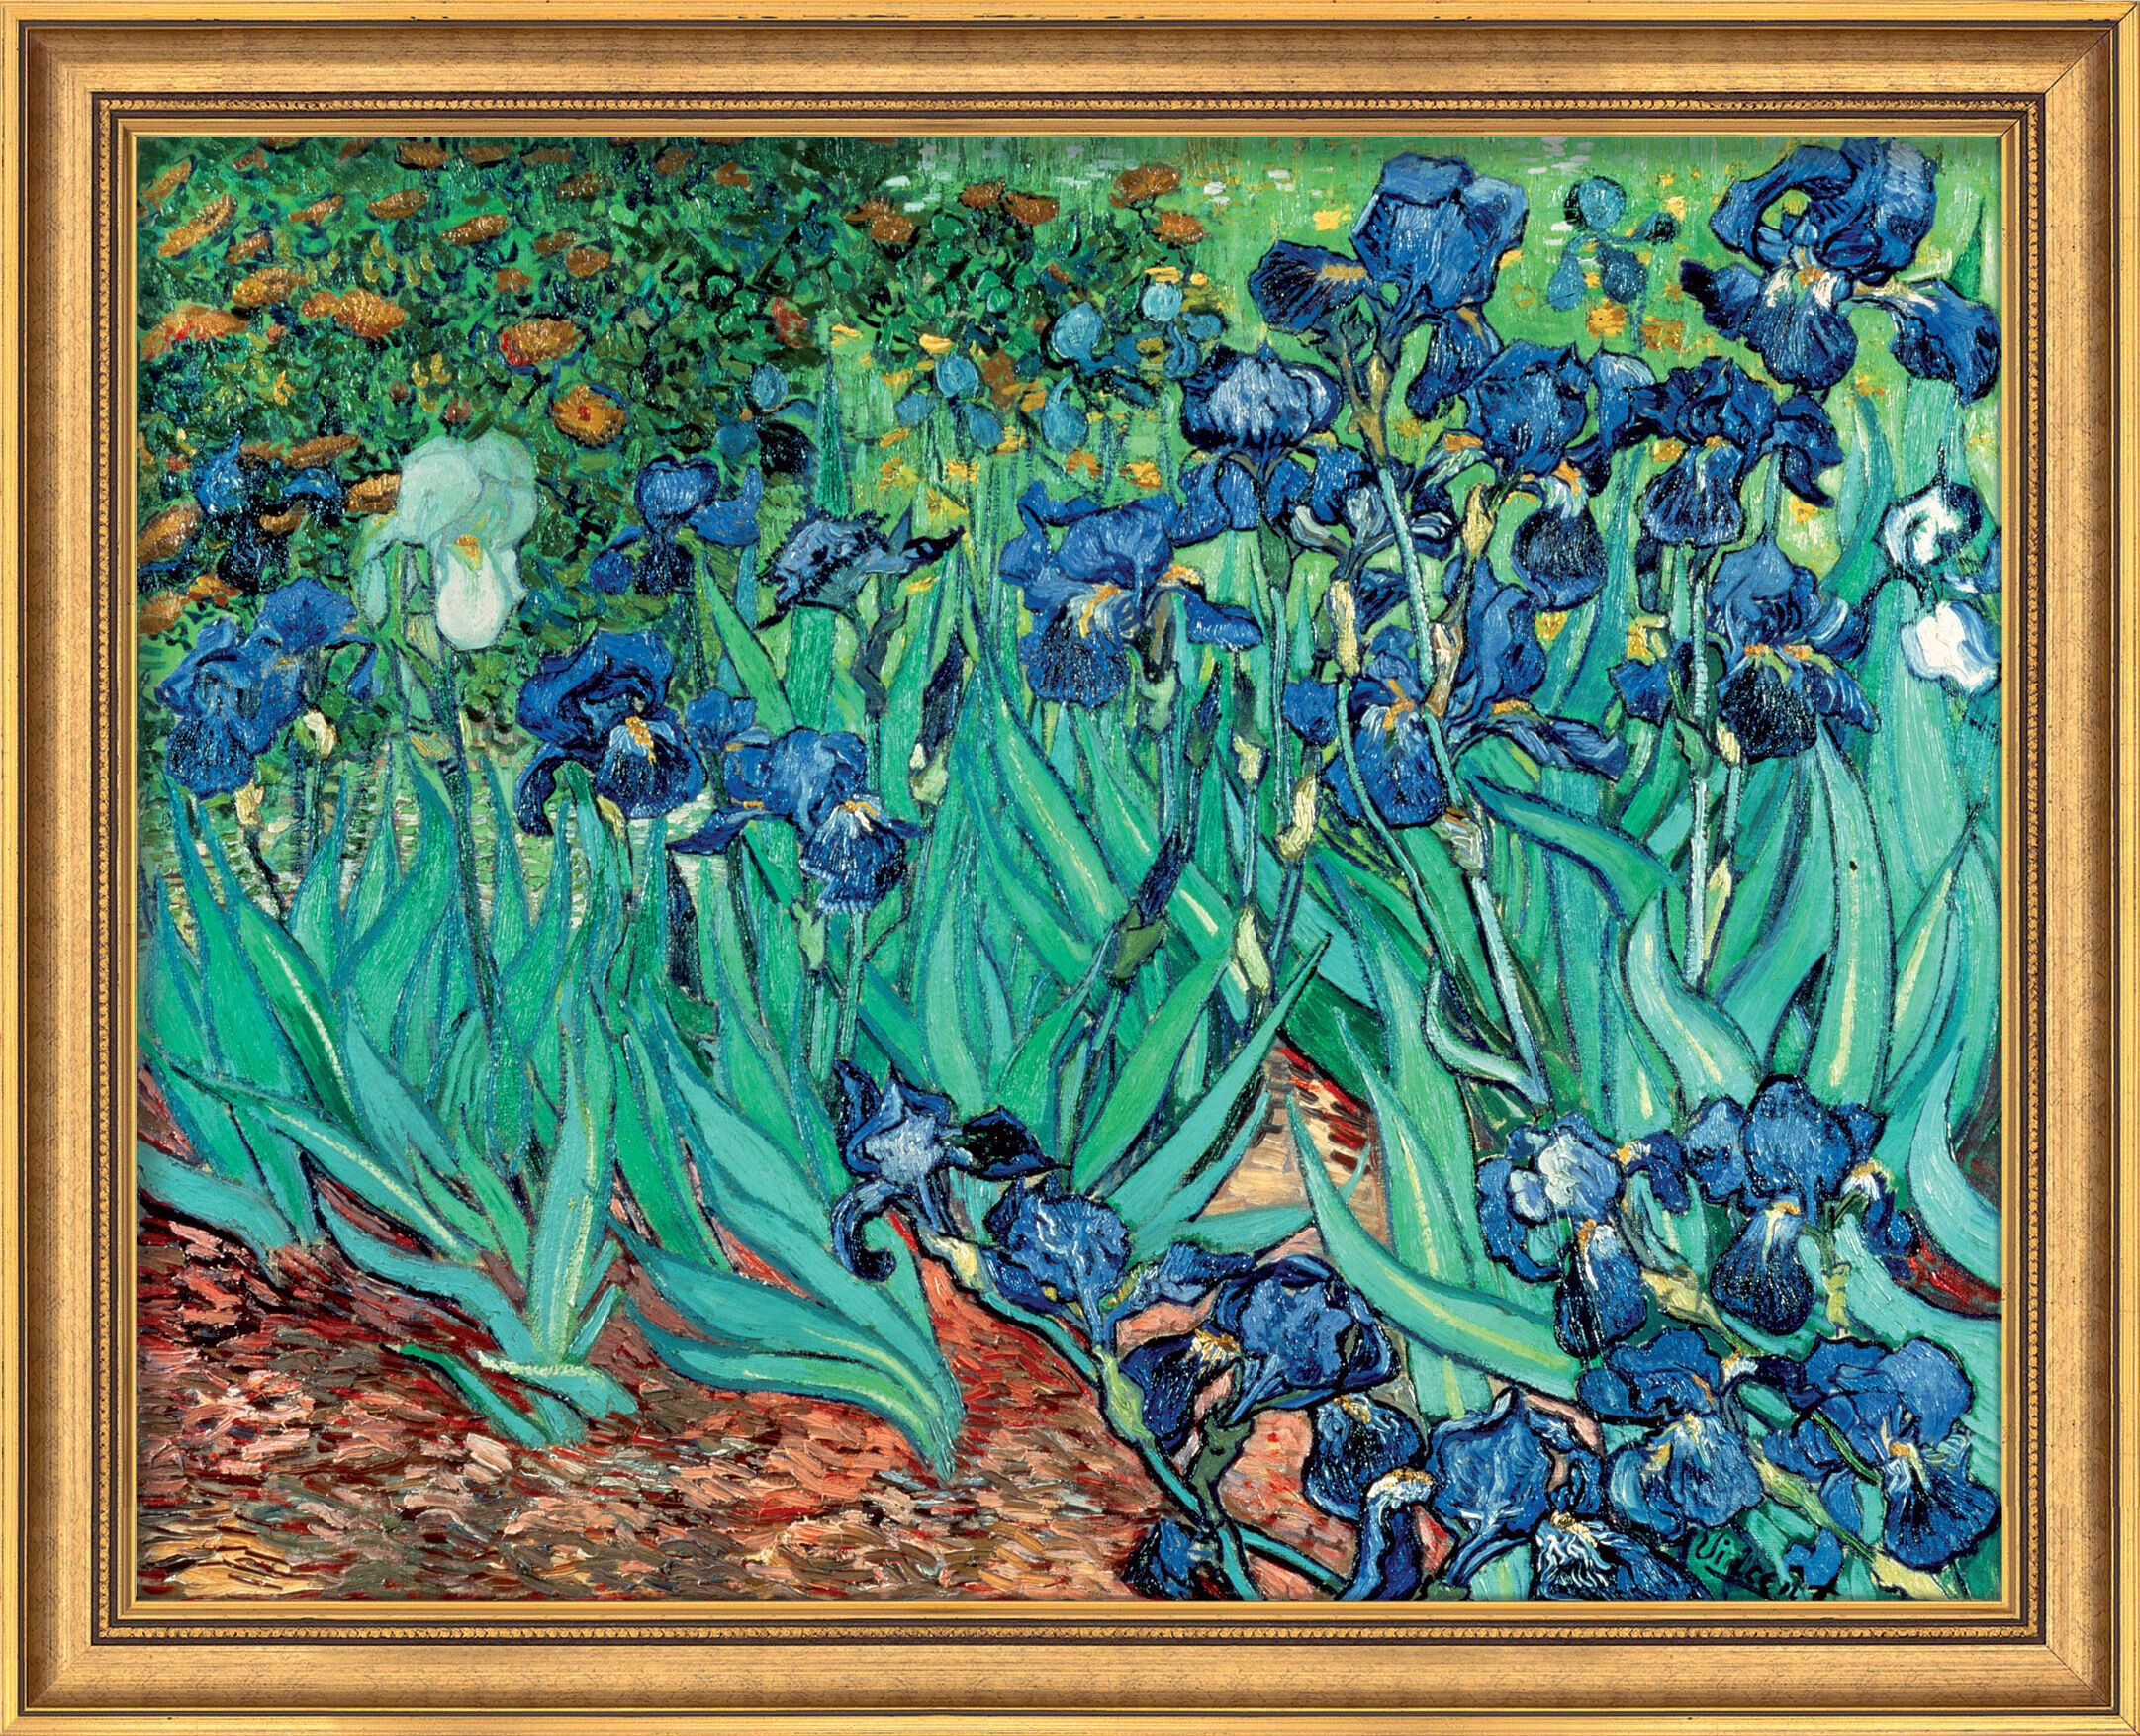 Famous irises by vincent van gogh for sale null null recommendation vincent van gogh reviewsmspy